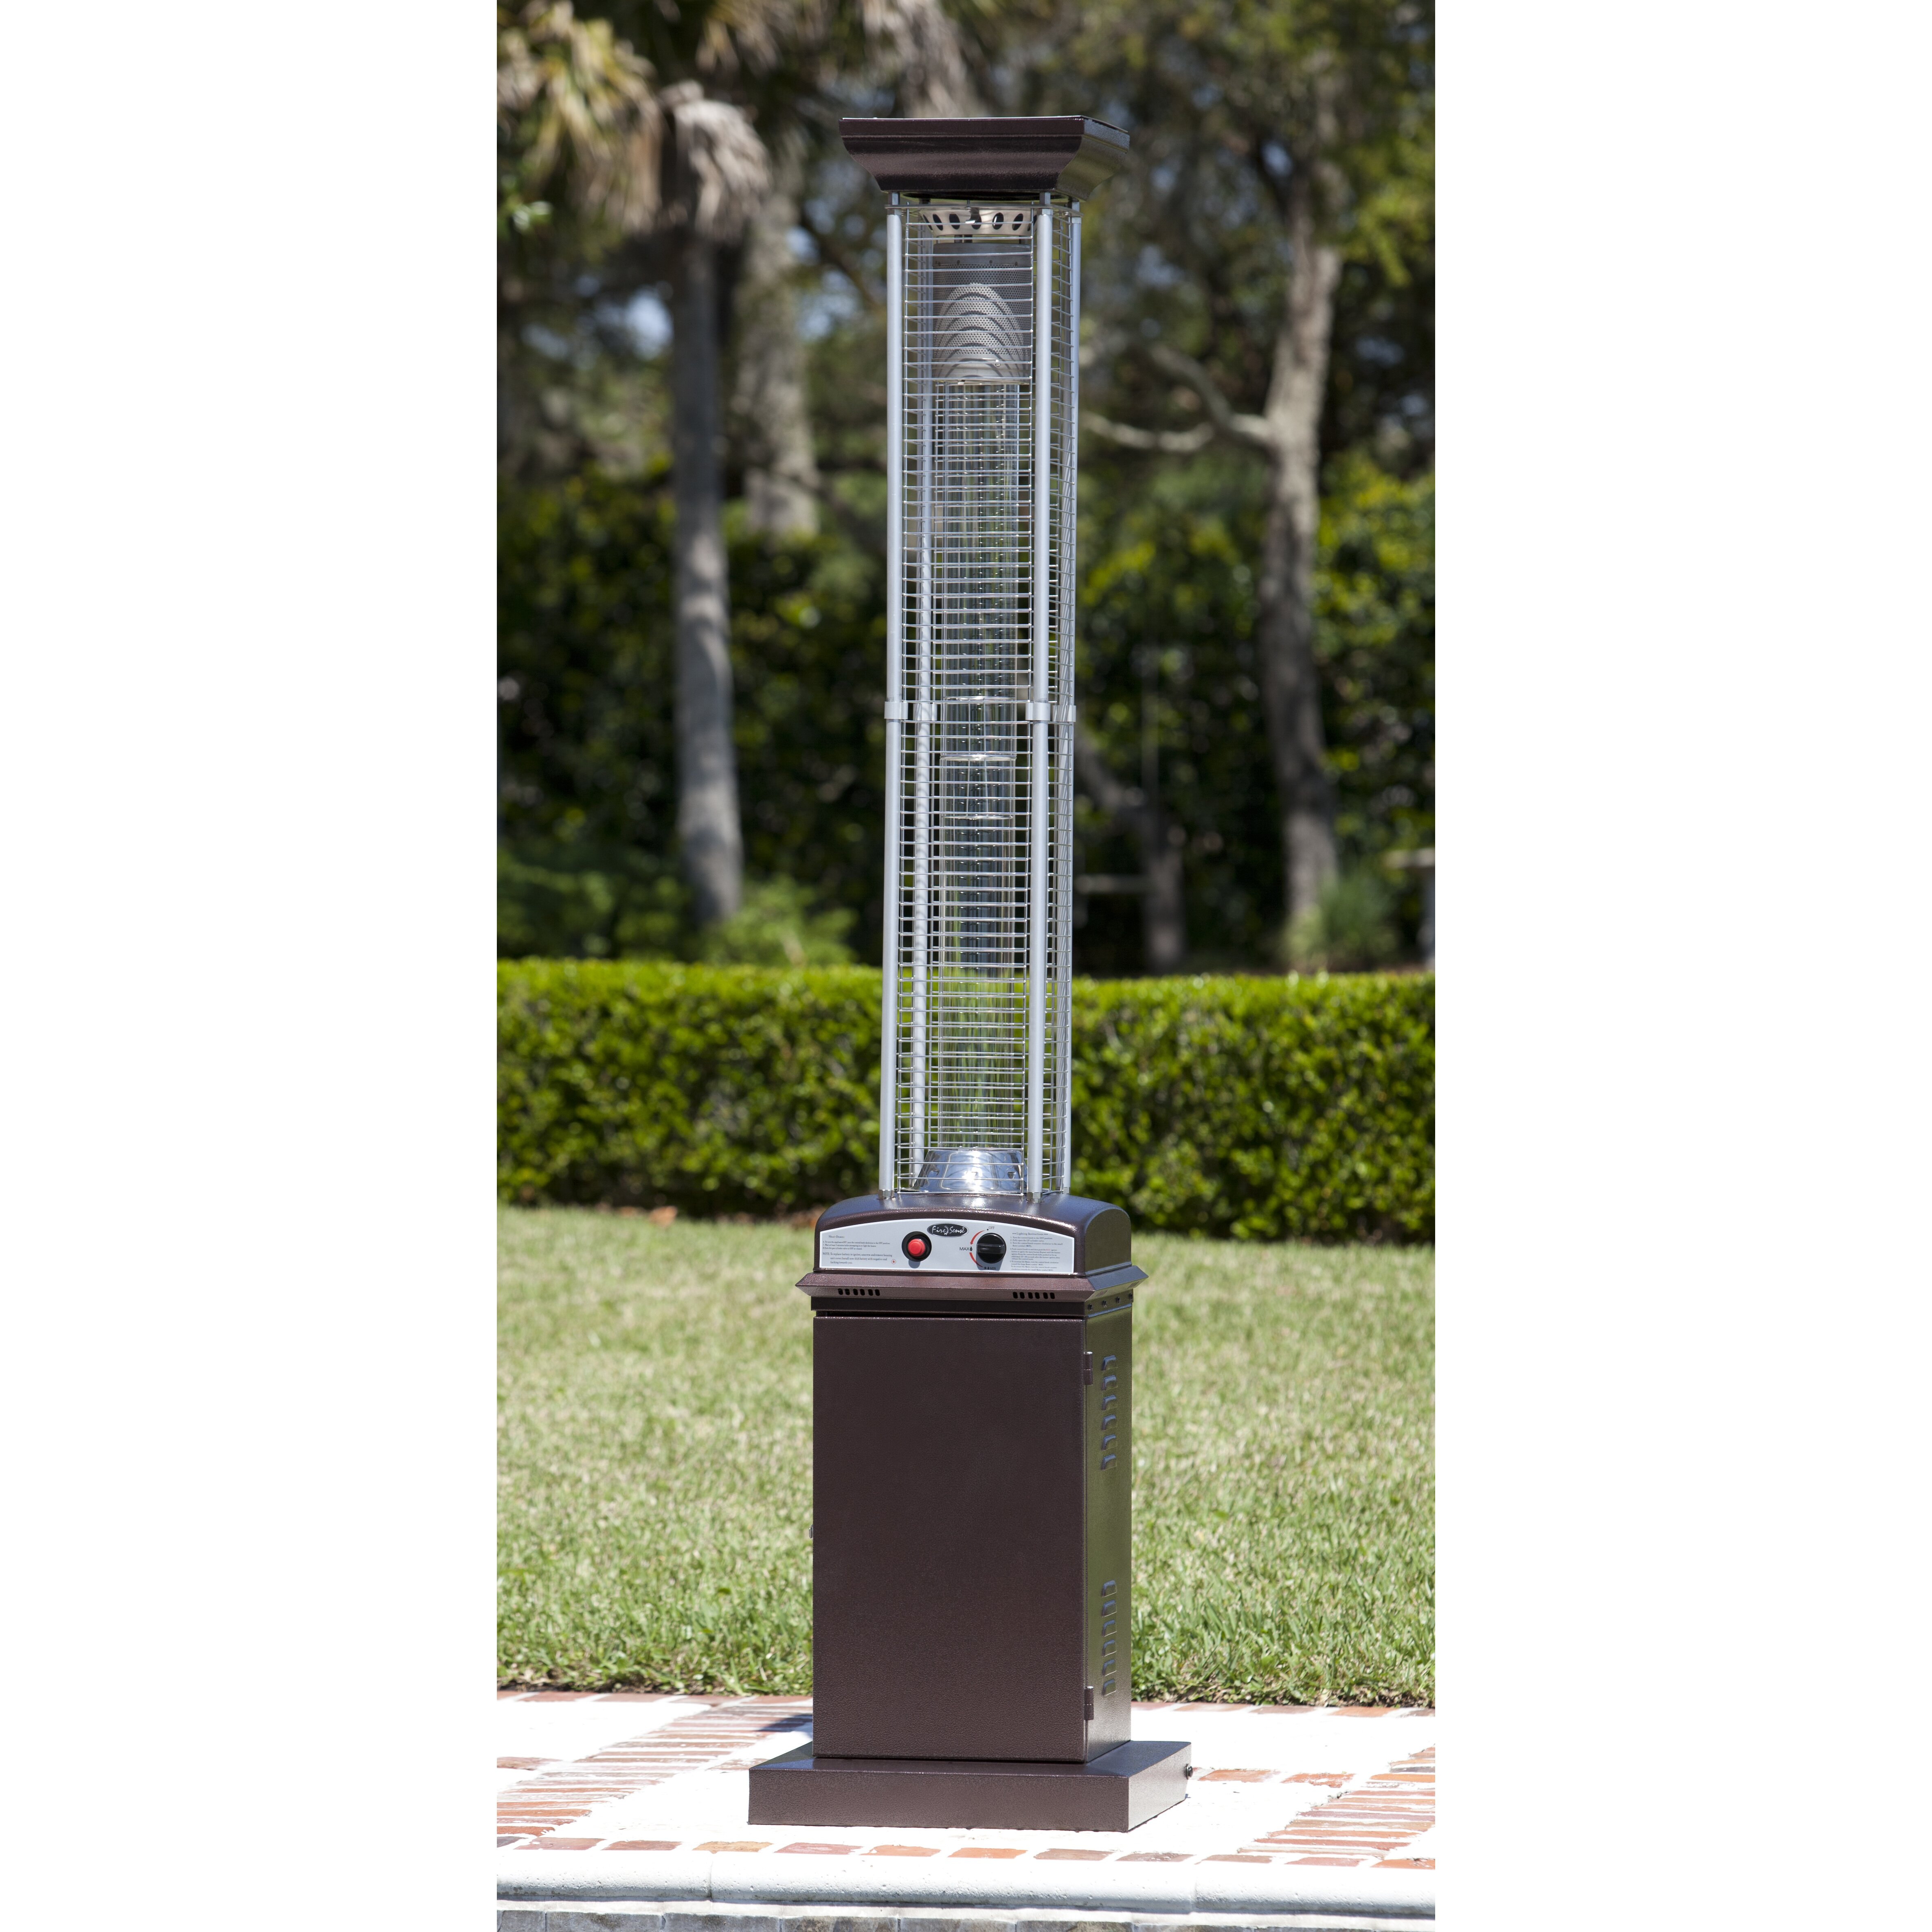 Fire Sense Hammered Square Flame 46000 BTU Propane Patio Heater – Fire Sense Patio Heater